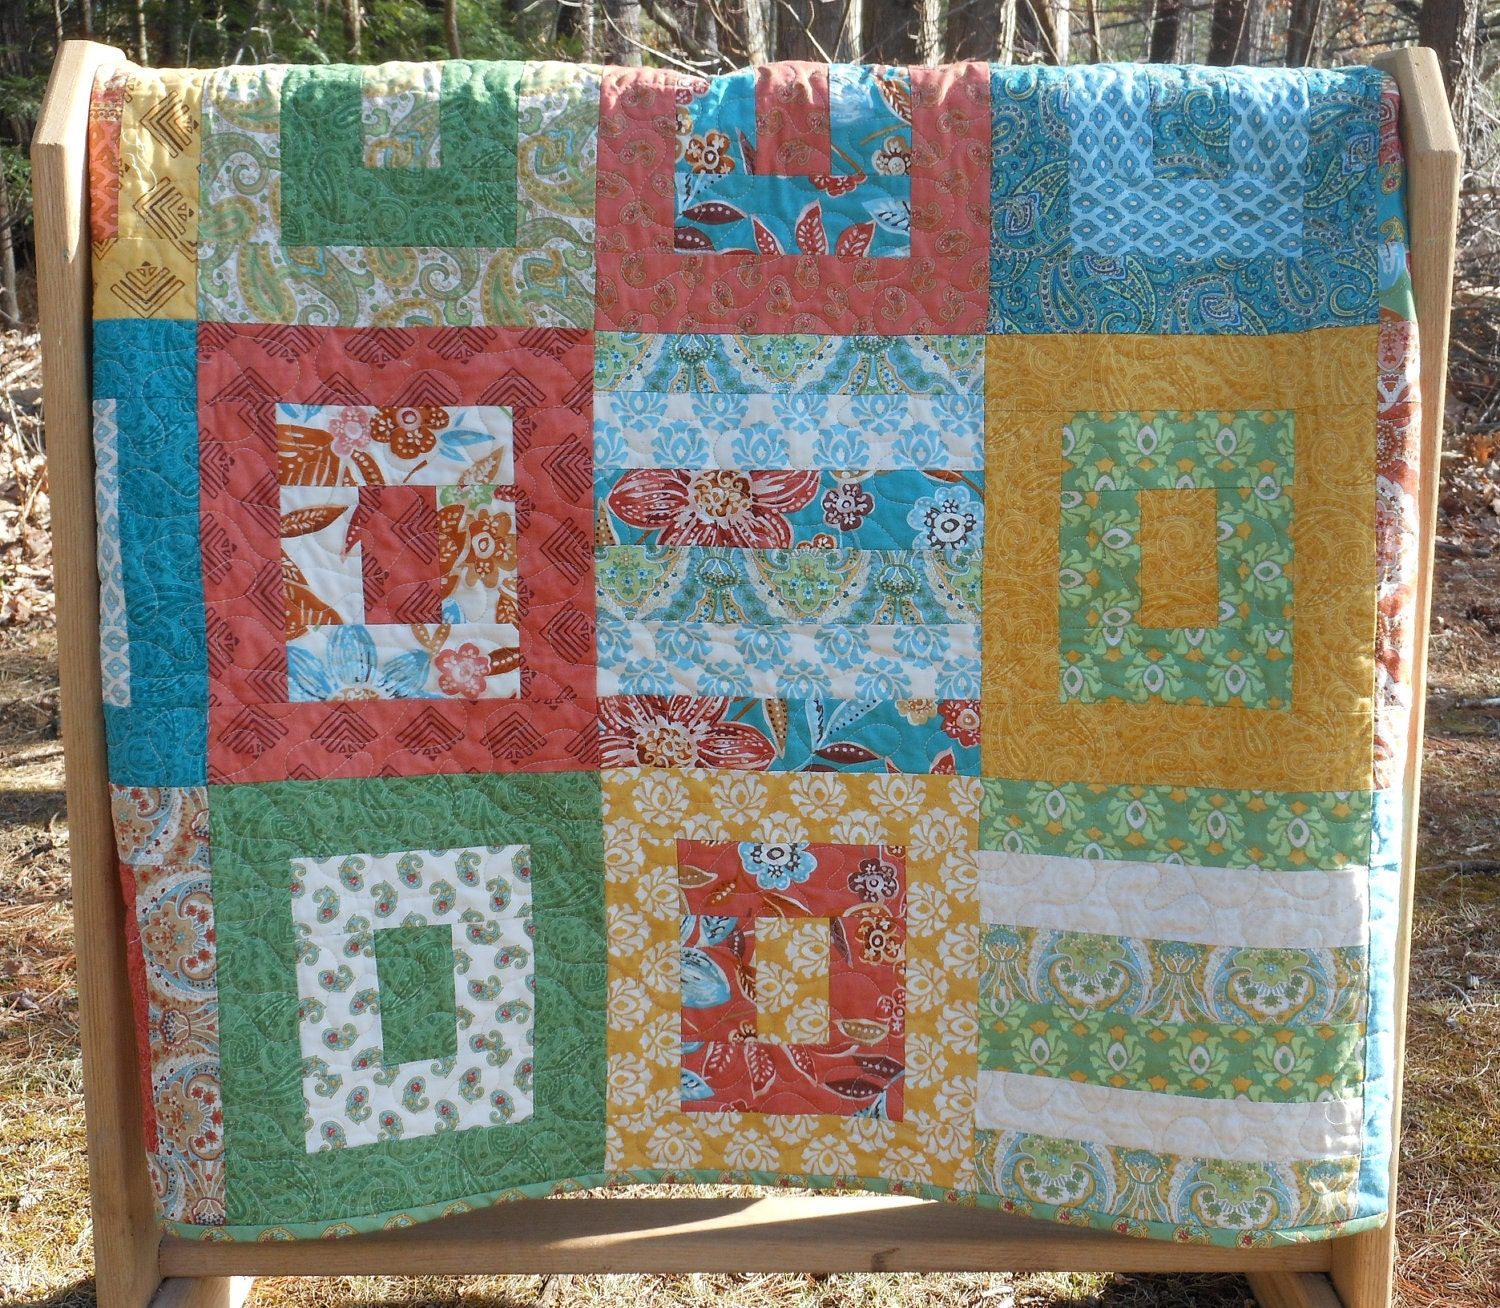 Donating Hope Happy Etsy Day Quilts